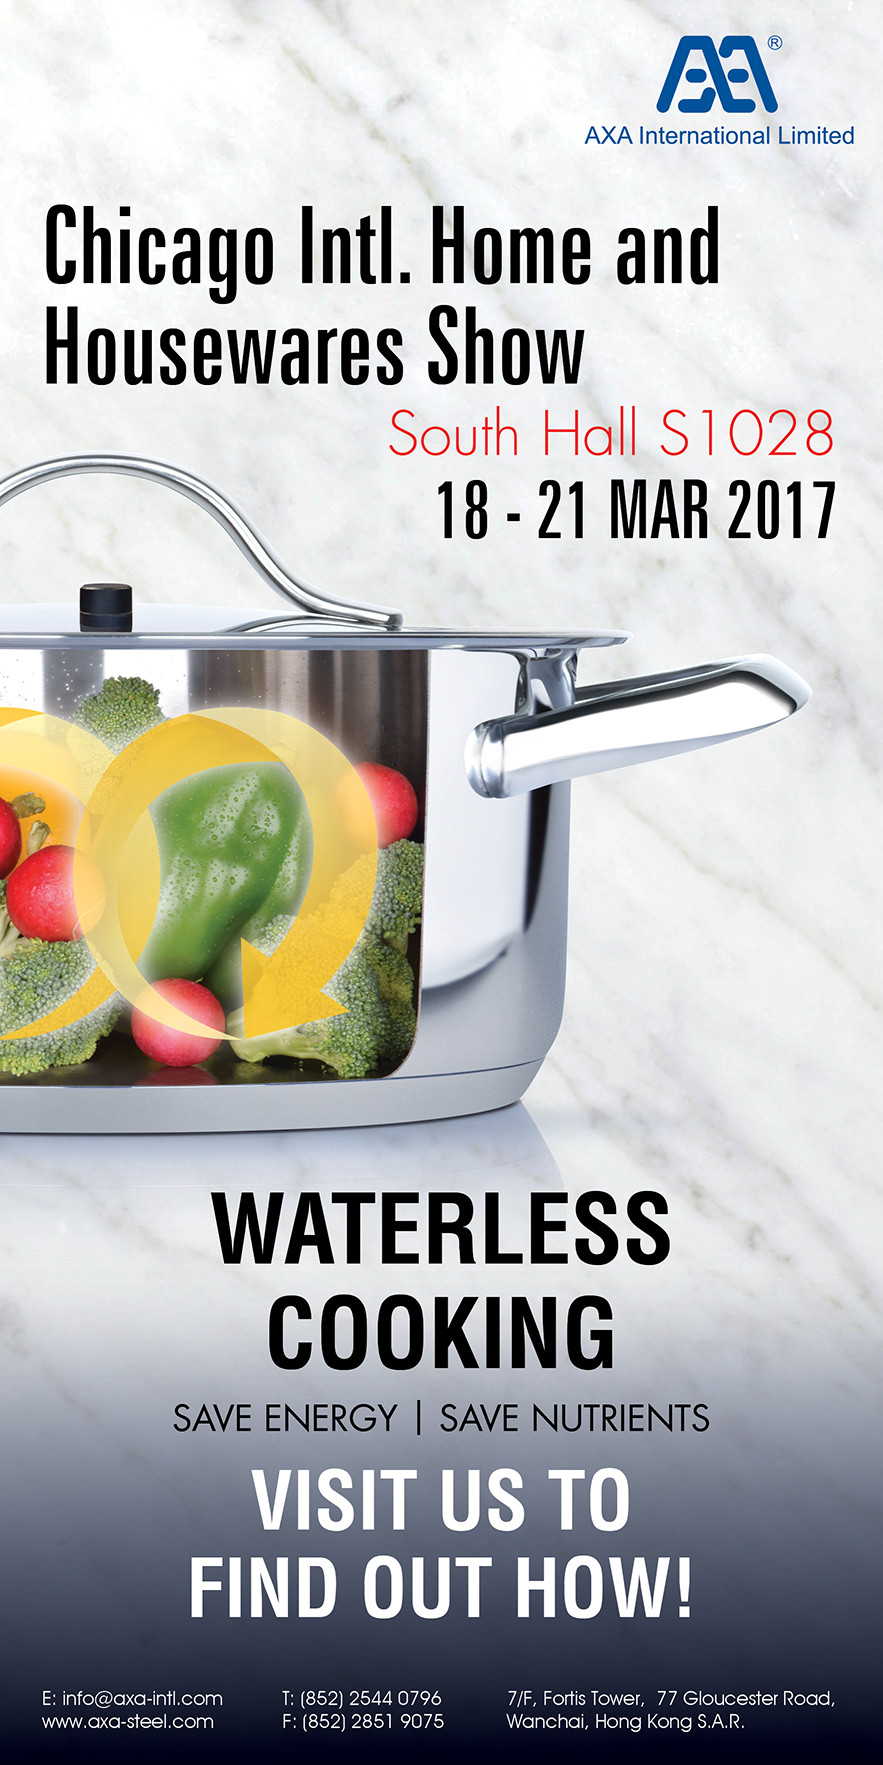 Chicago Intl. Home and Housewares Show 2017